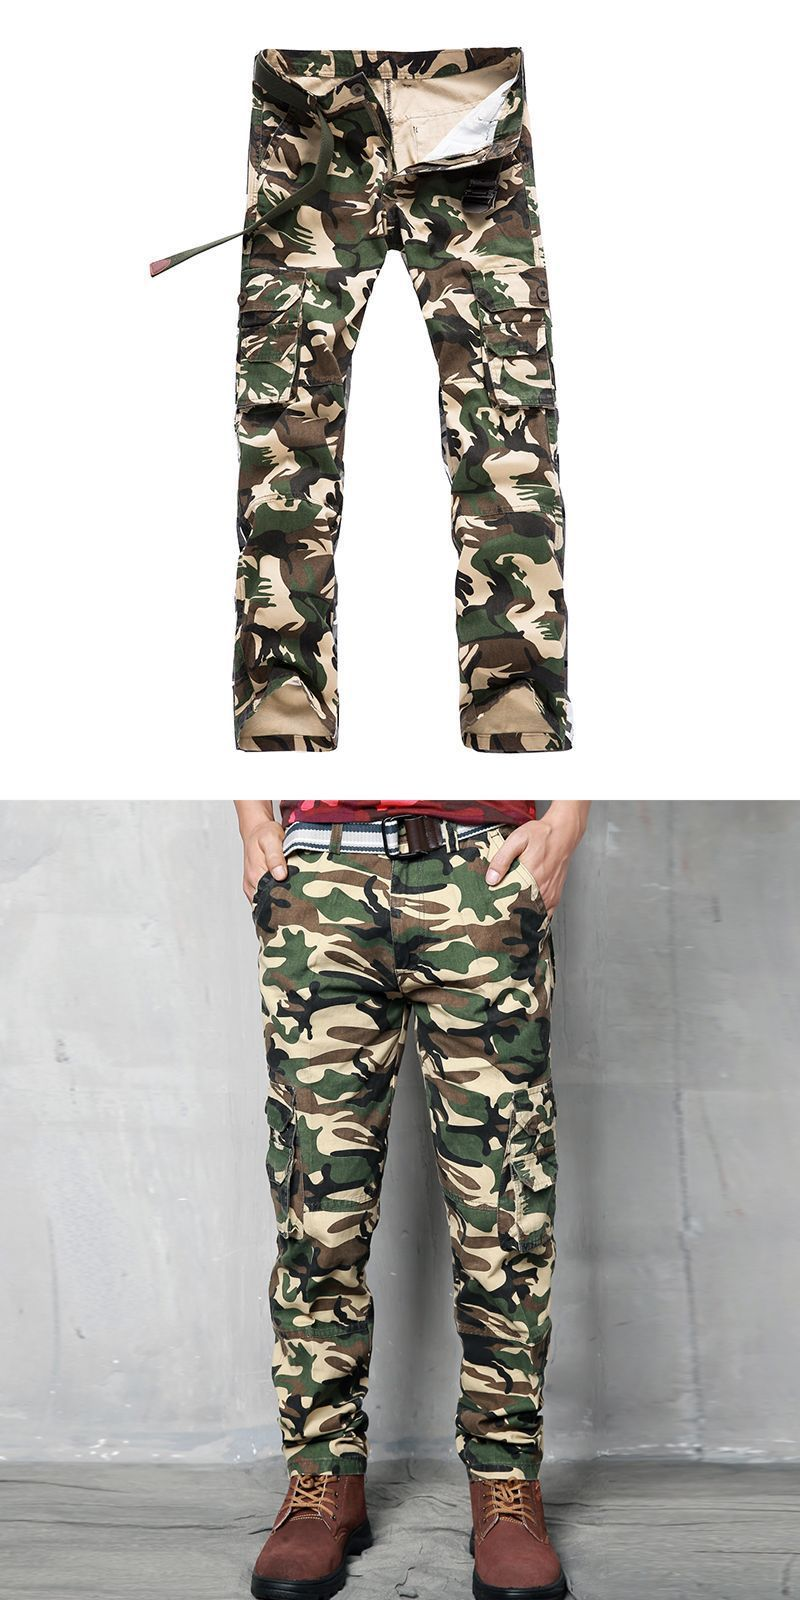 1a93d732c Man casual outdoor style camouflage long trousers mens open bottom sweat  pants #champion #men's